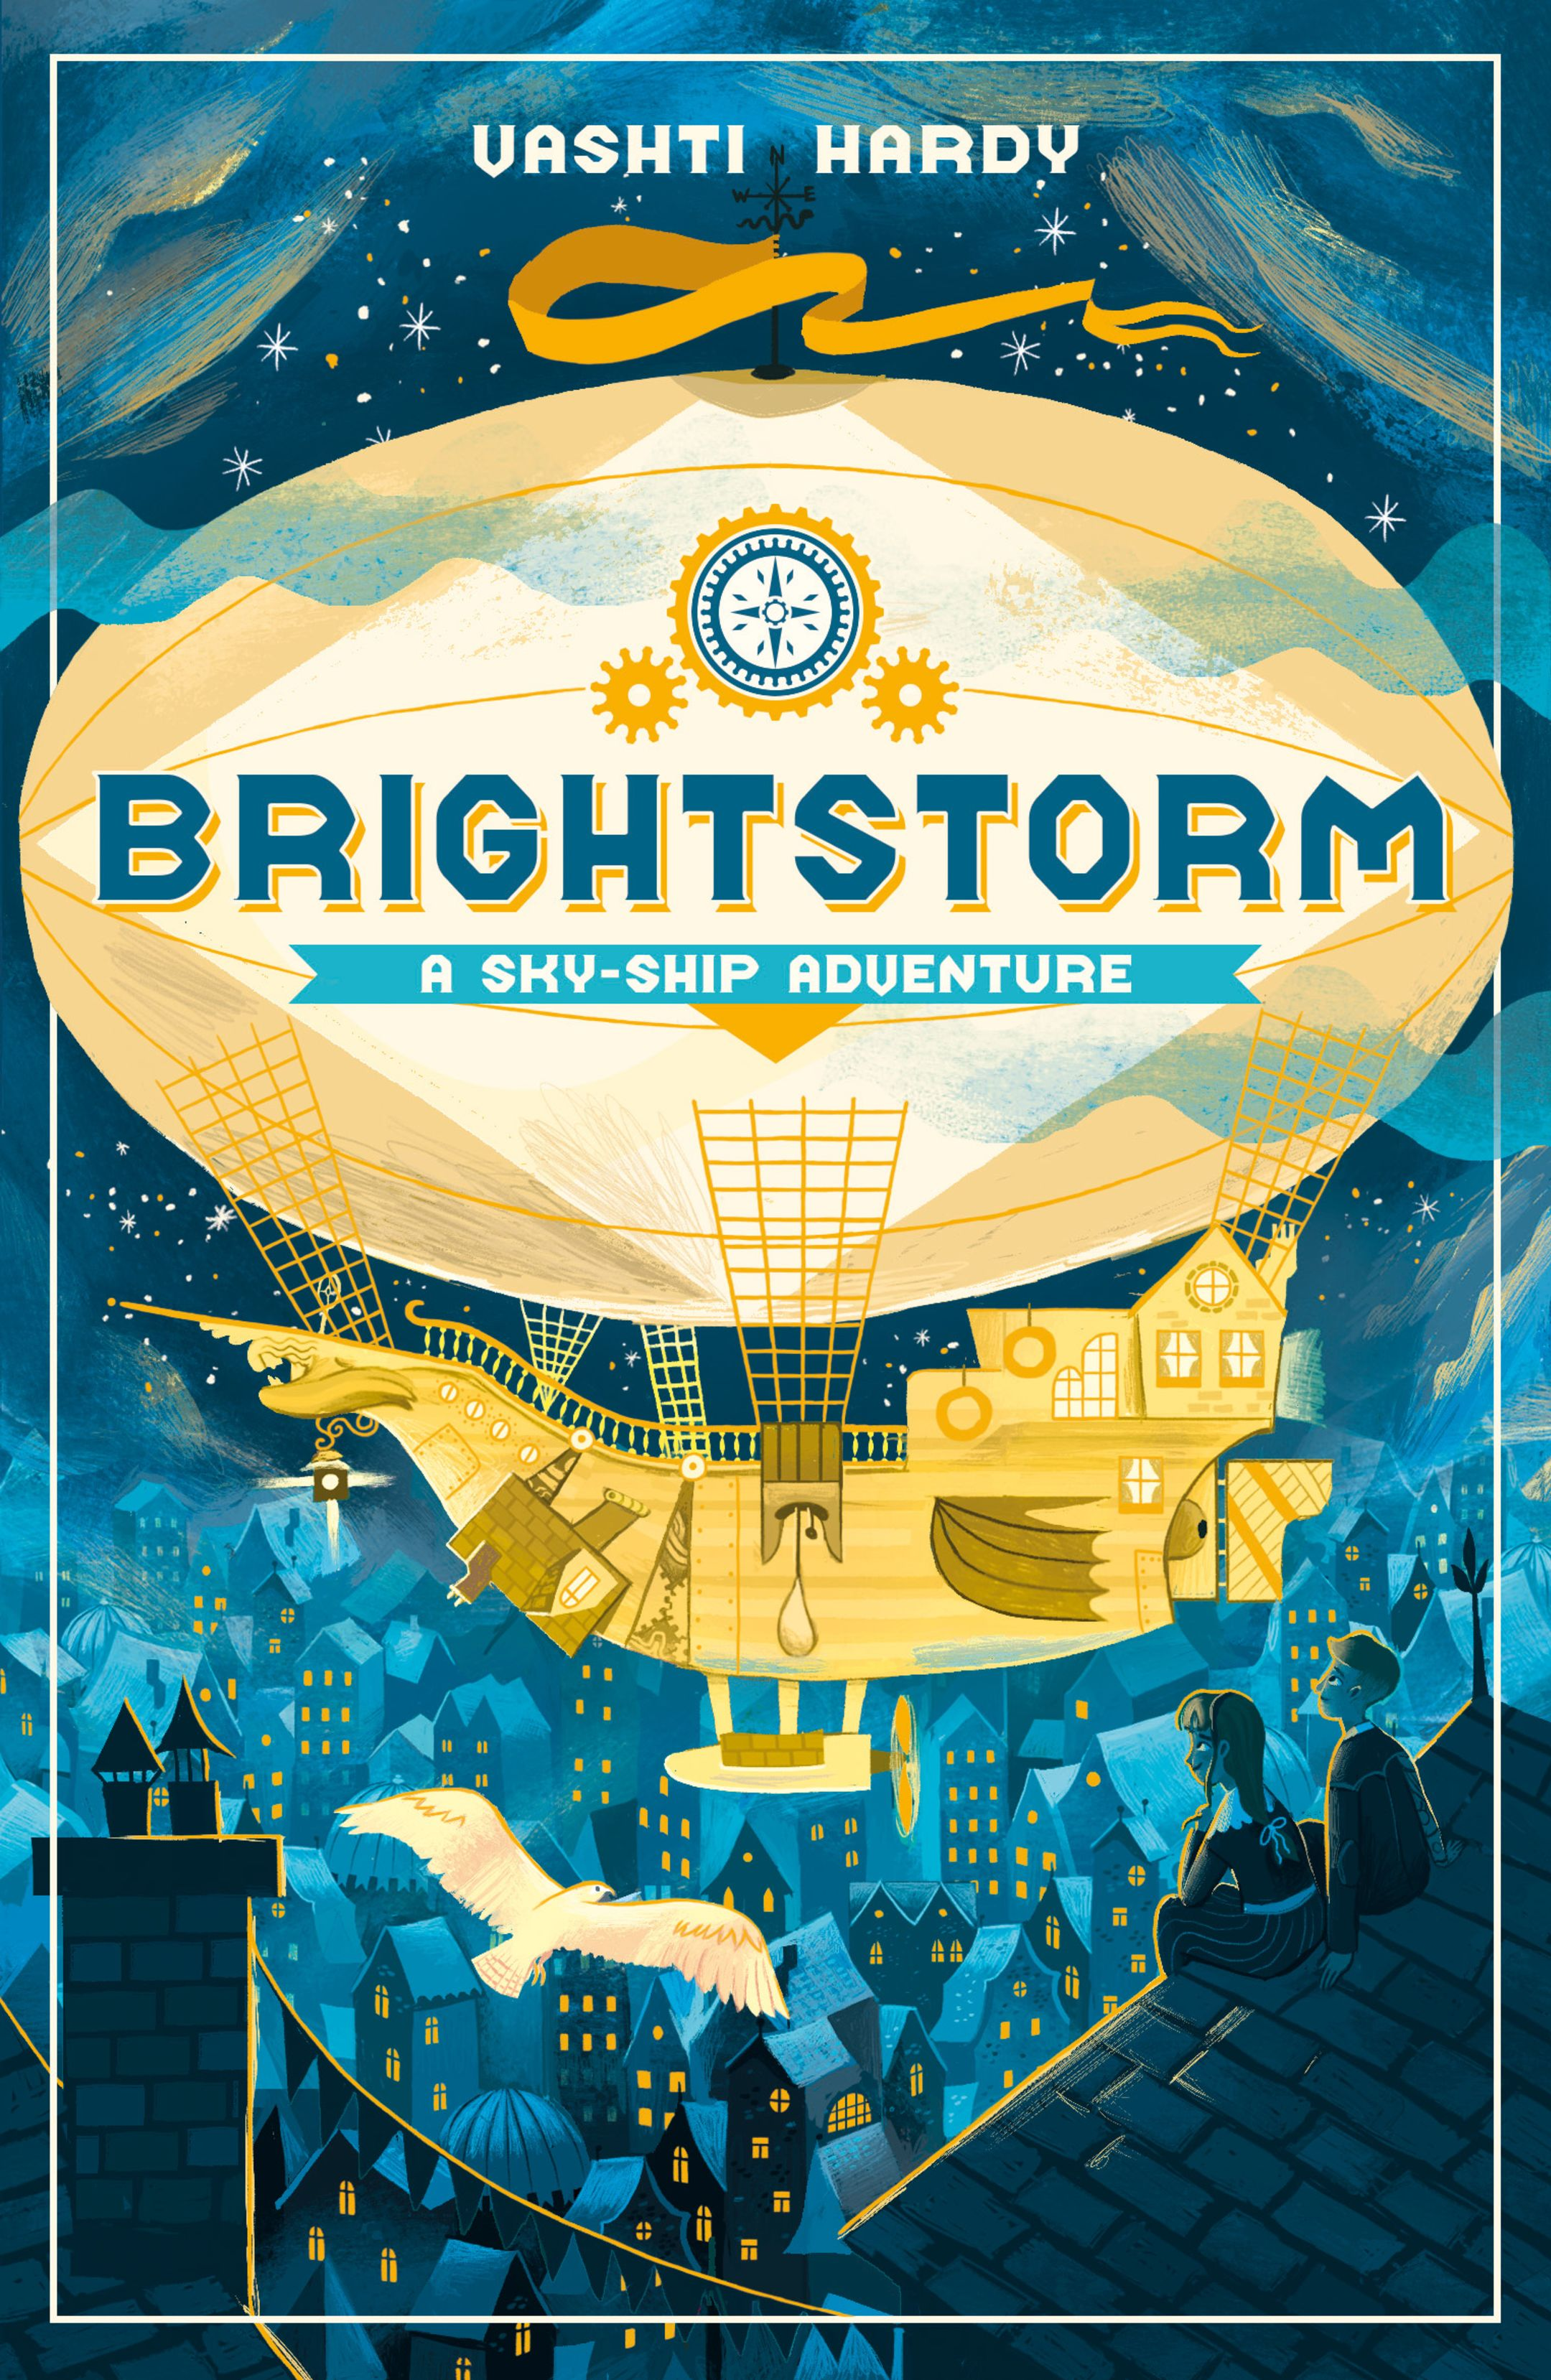 The book cover of Brightstorm, by Vashti Hardy